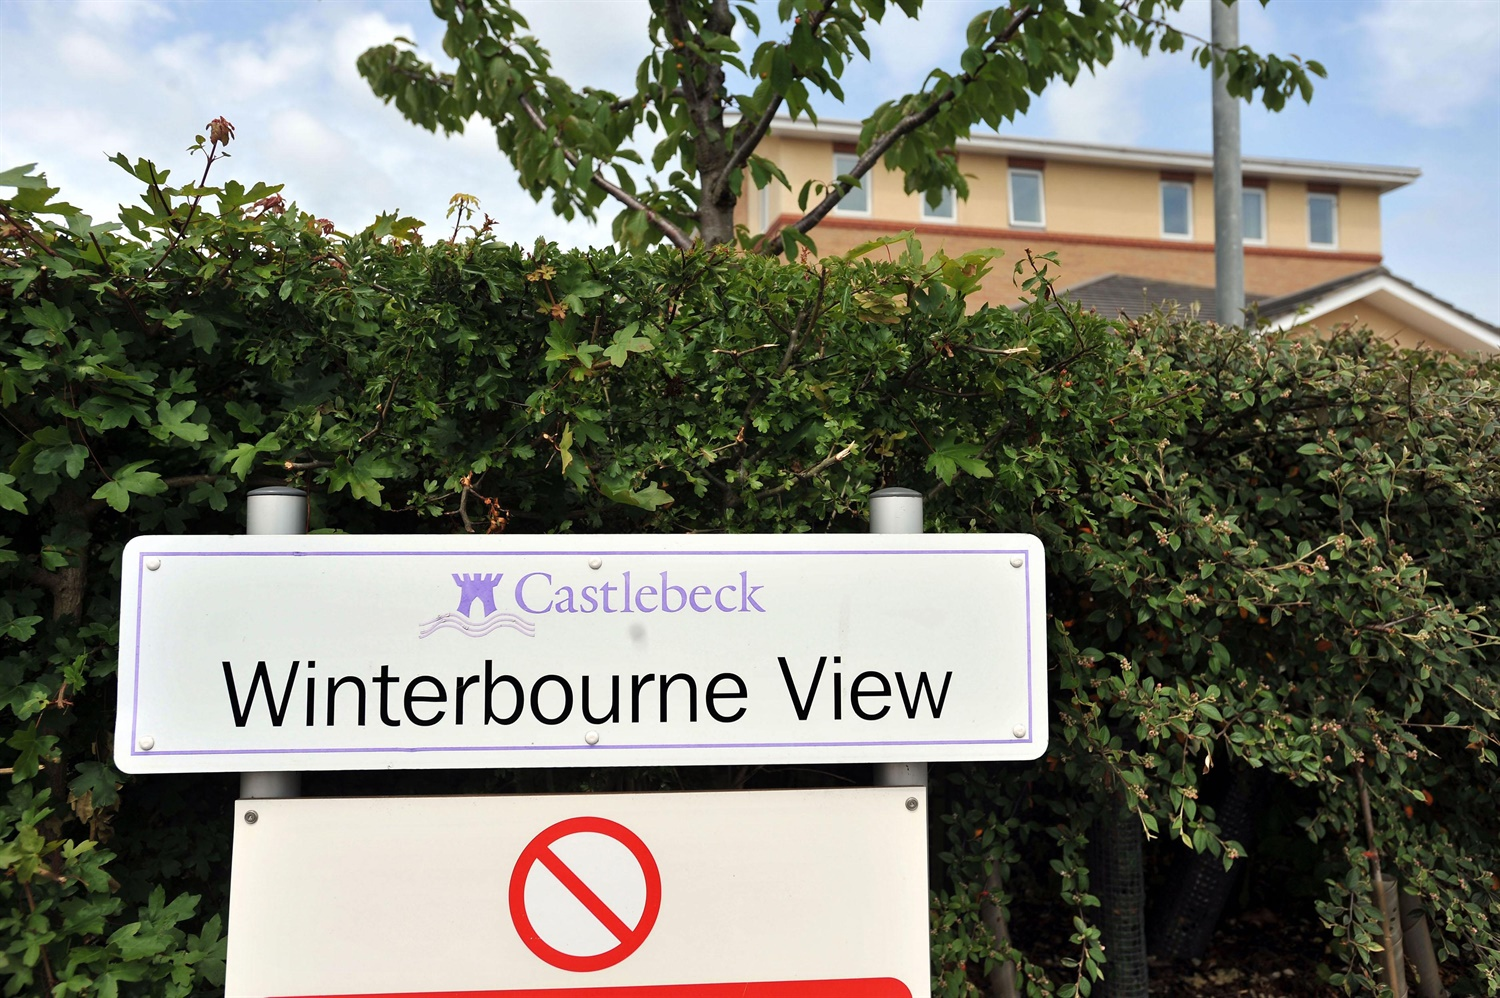 winterbourne two reports on serious failures to protect individuals from abuse 26022015 identify two reports on serious failures to protect individuals from abuse write an account that describes the unsafe practices in the reviews.